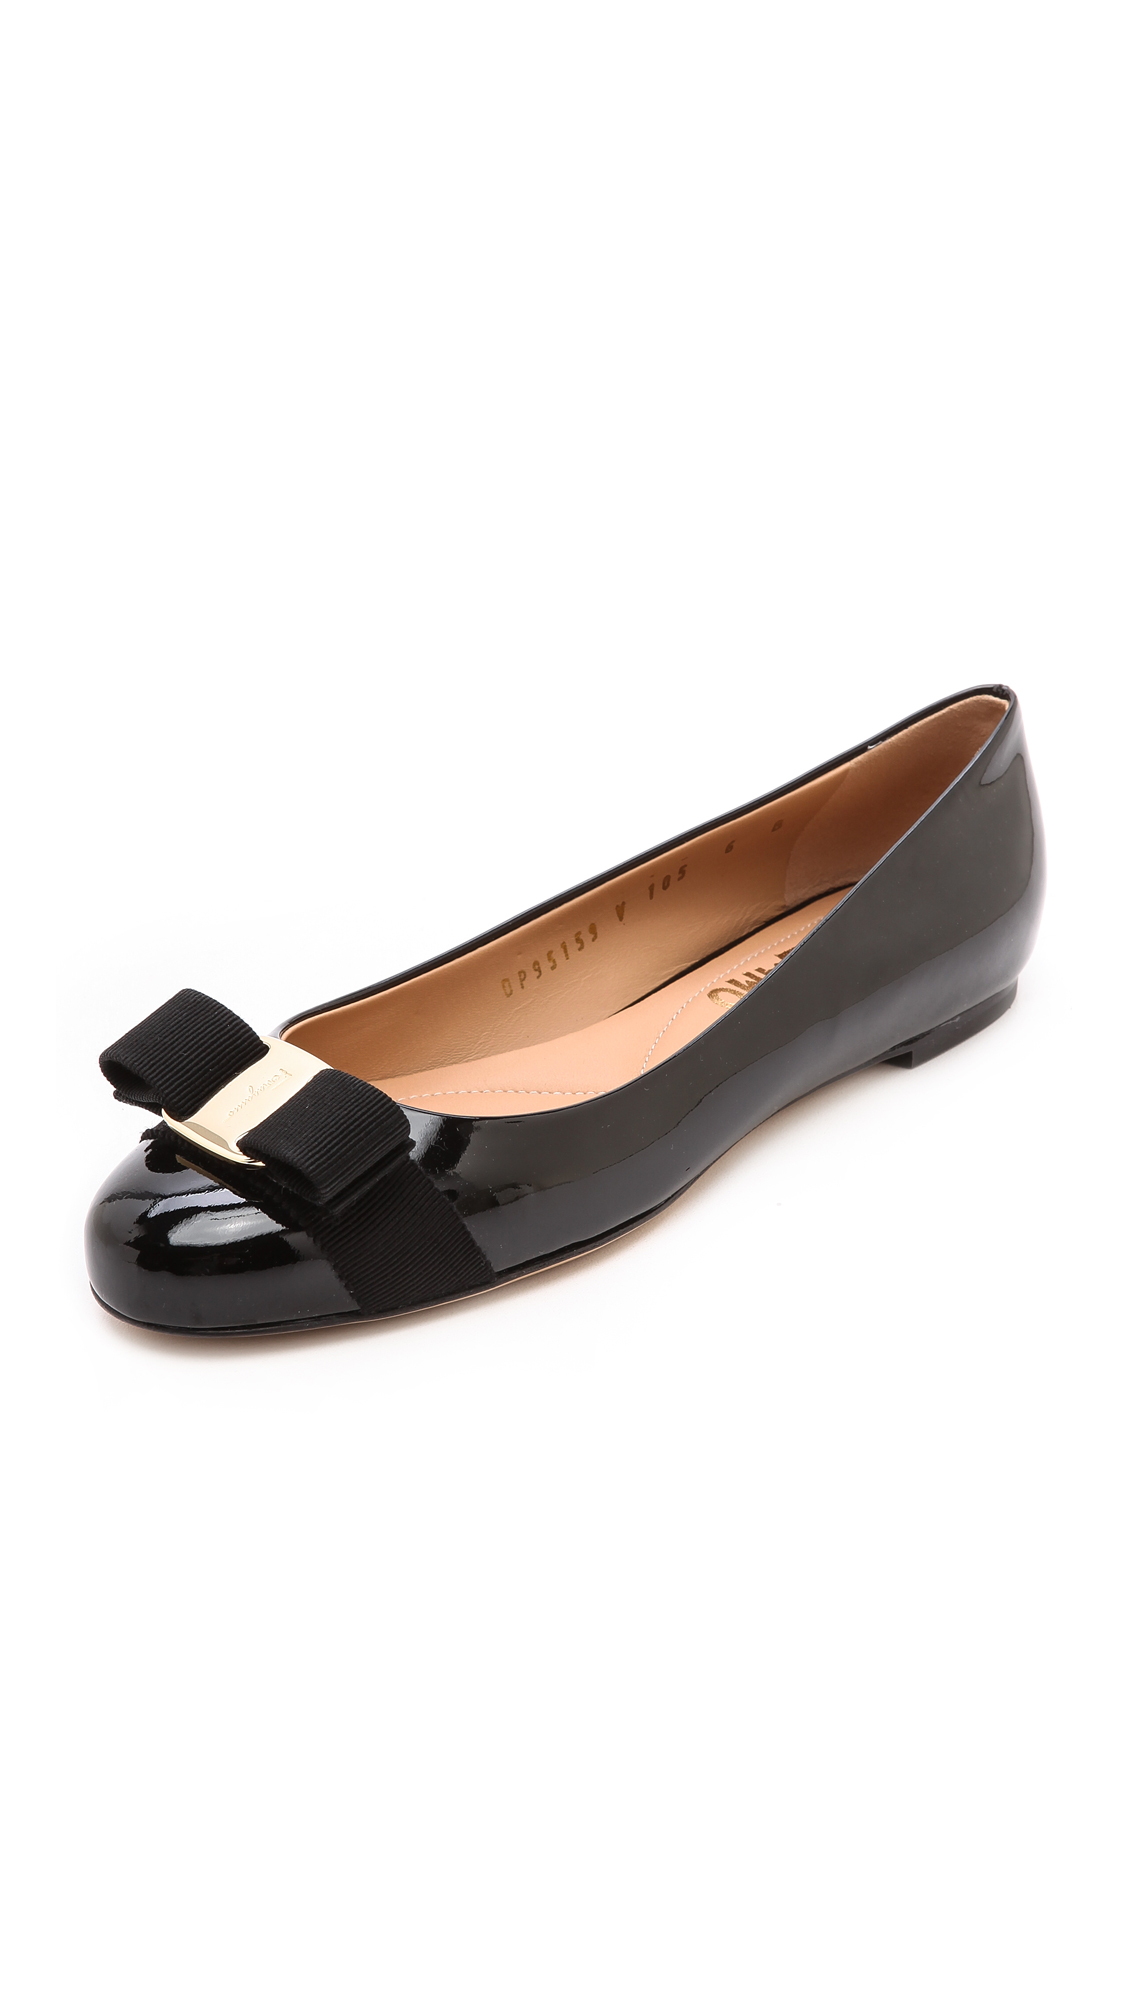 41c44764a Salvatore Ferragamo Varina Studded Bow-Embellished Patent-Leather Ballet  Flats In Black